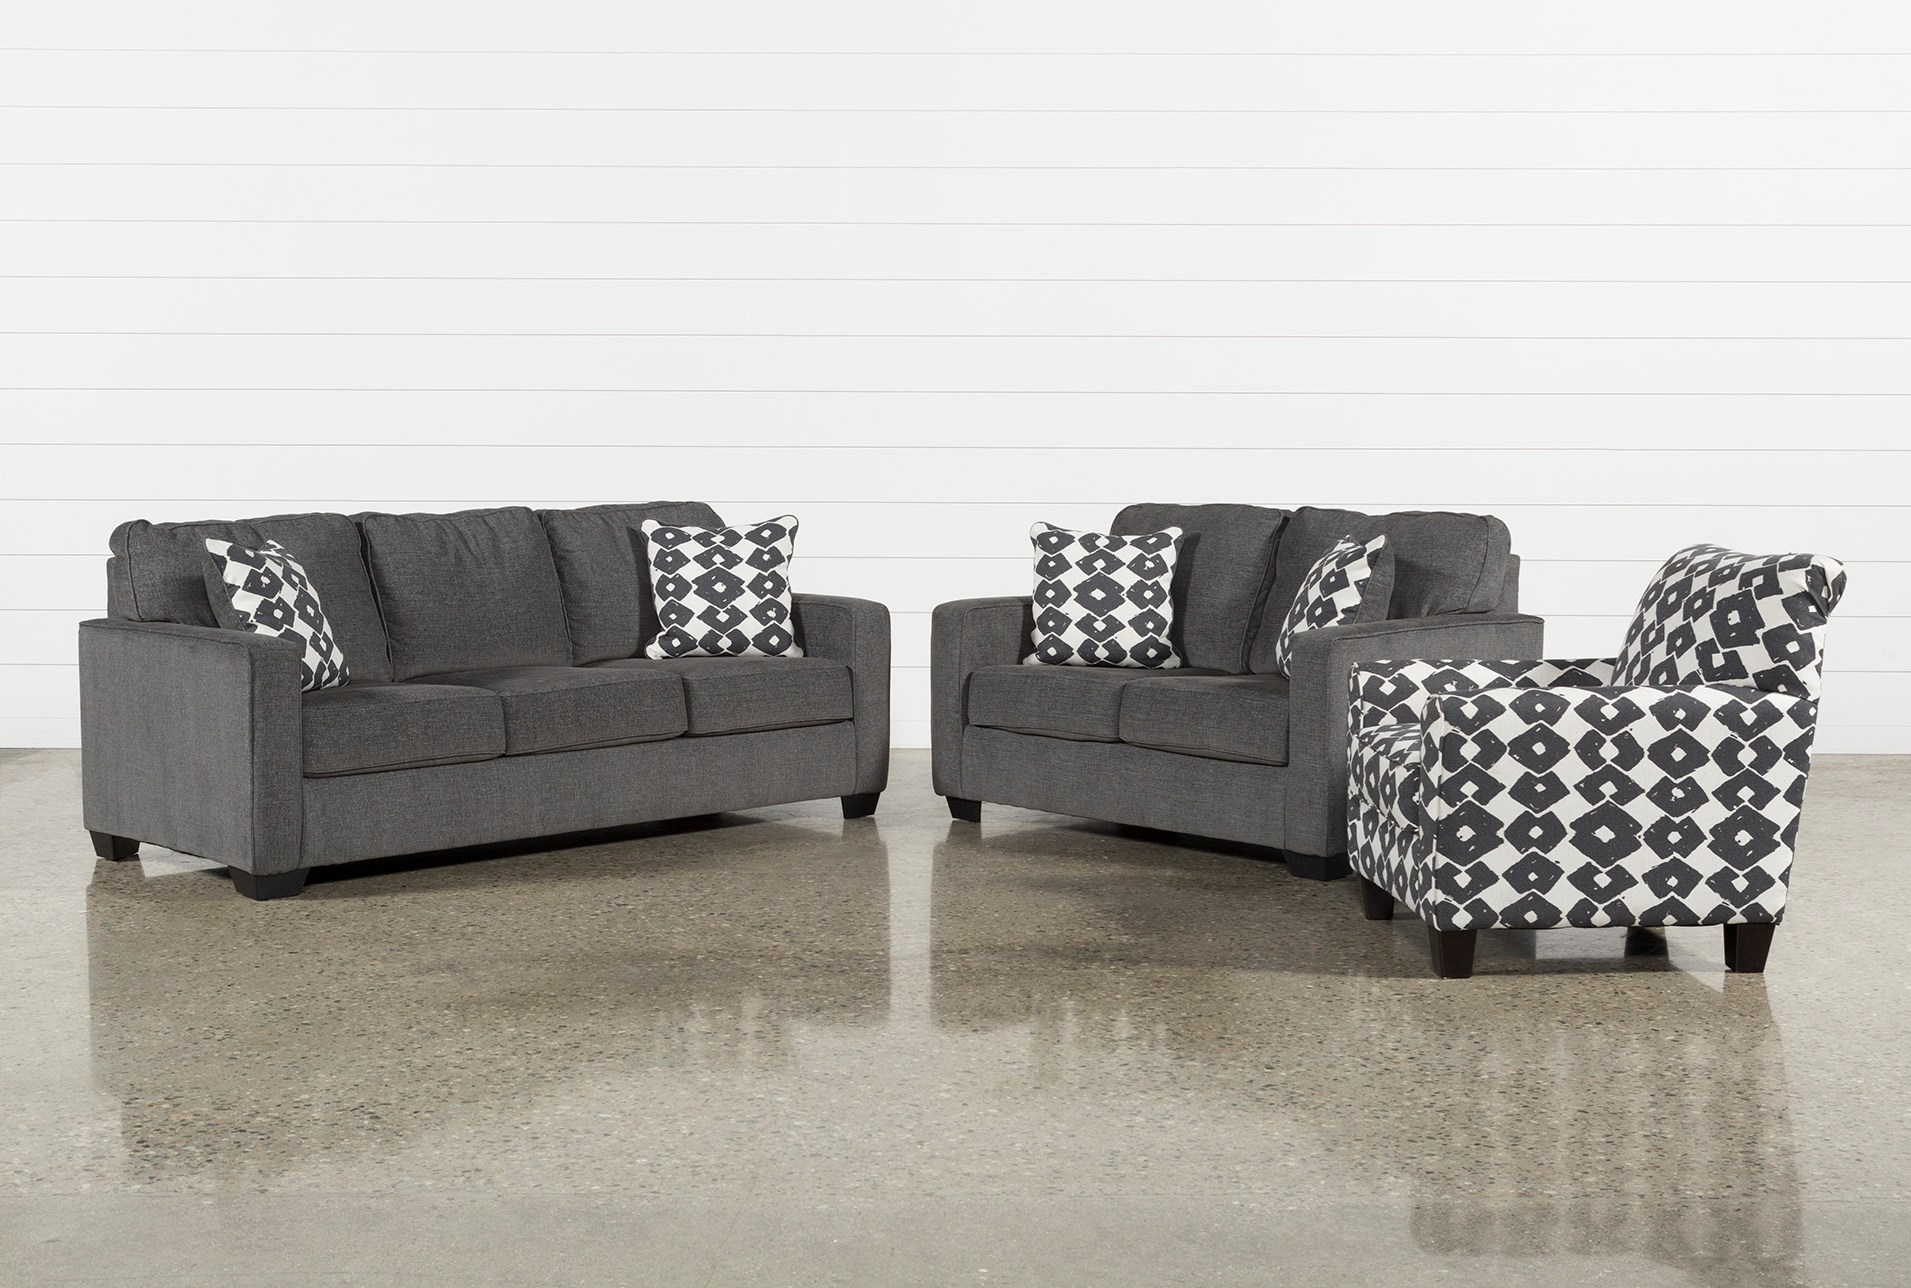 Turdur 3 piece living room set with queen sleeper qty 1 has been successfully added to your cart